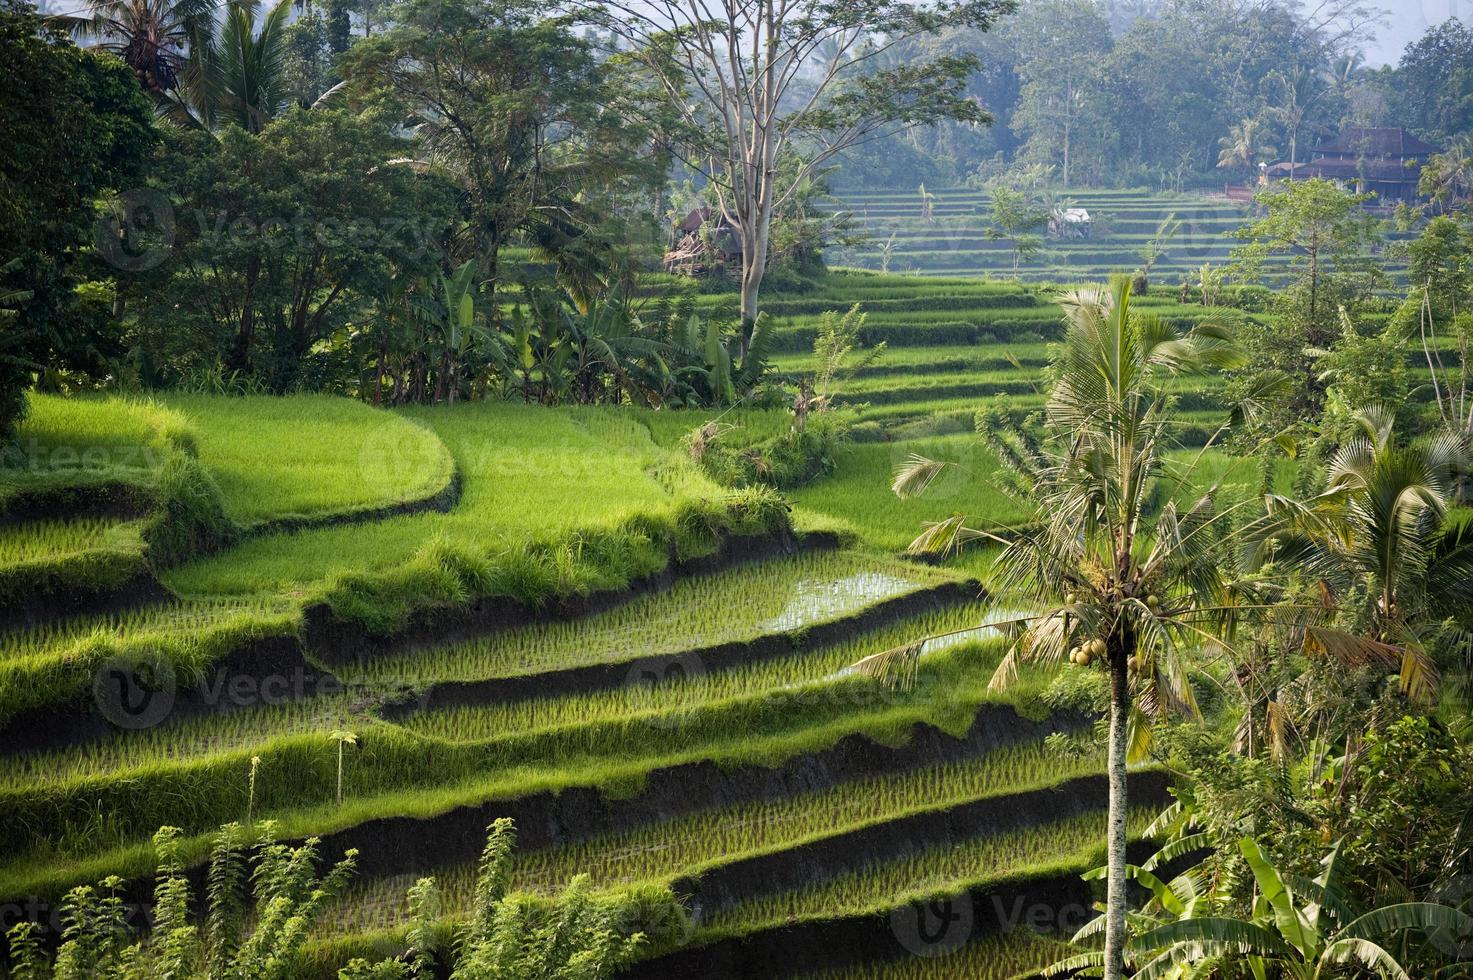 Bali, Indonesia. photo